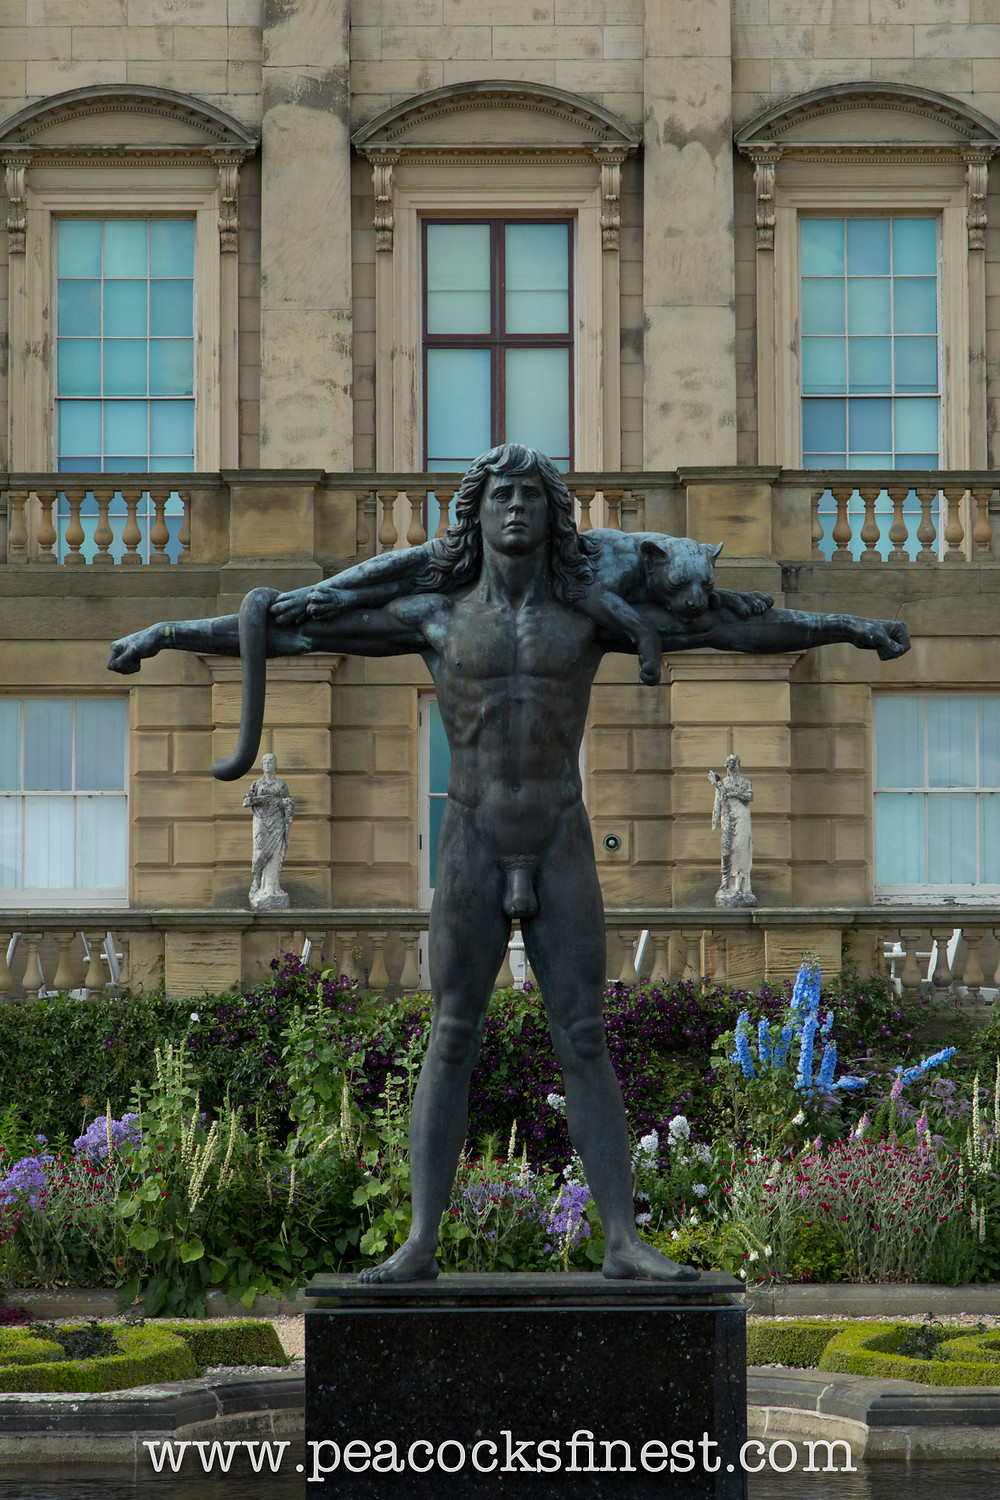 Harewood House, The Terrace. 'Orpheus' by Astrid Zydower, 1984.